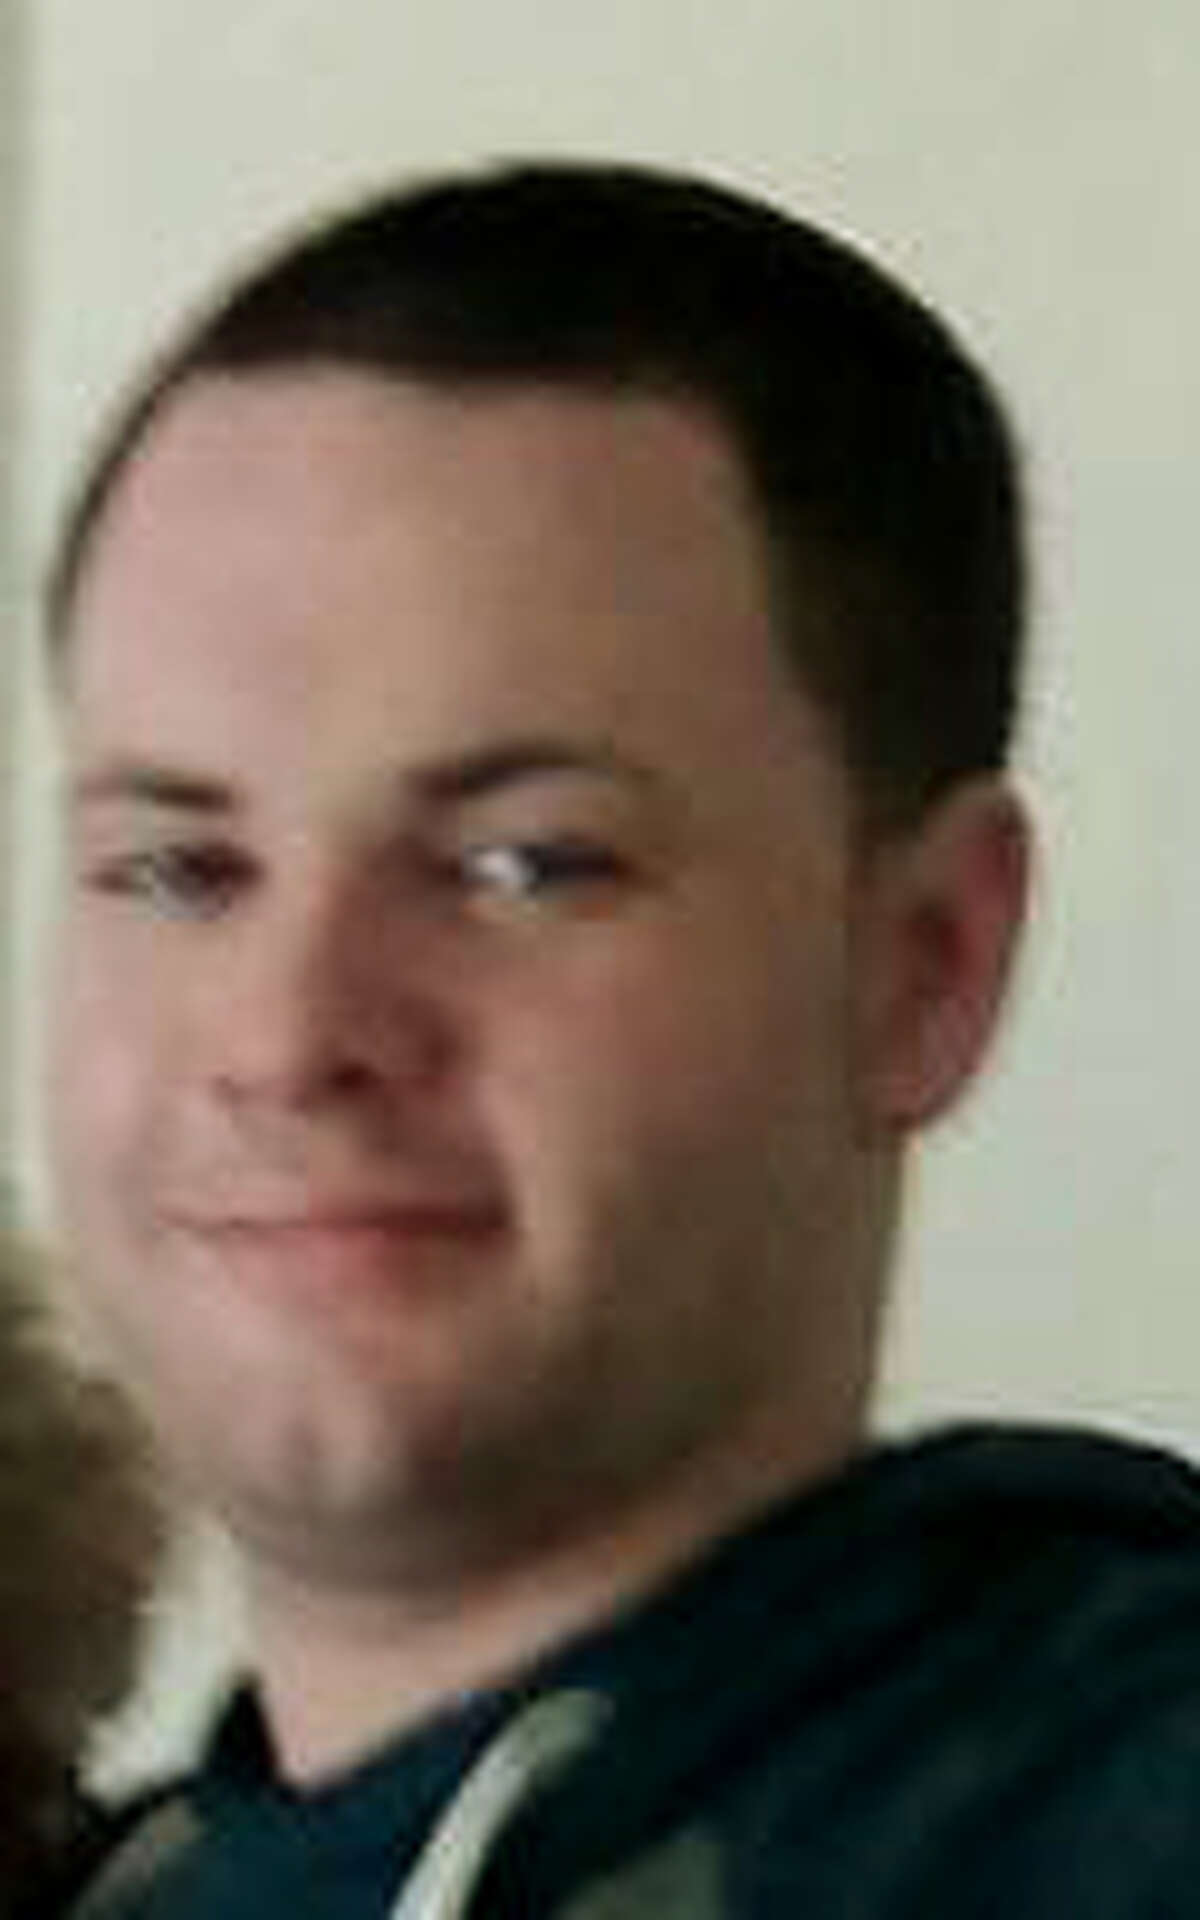 James Marino, of Stratford, died of a heroin overdose at age 23.